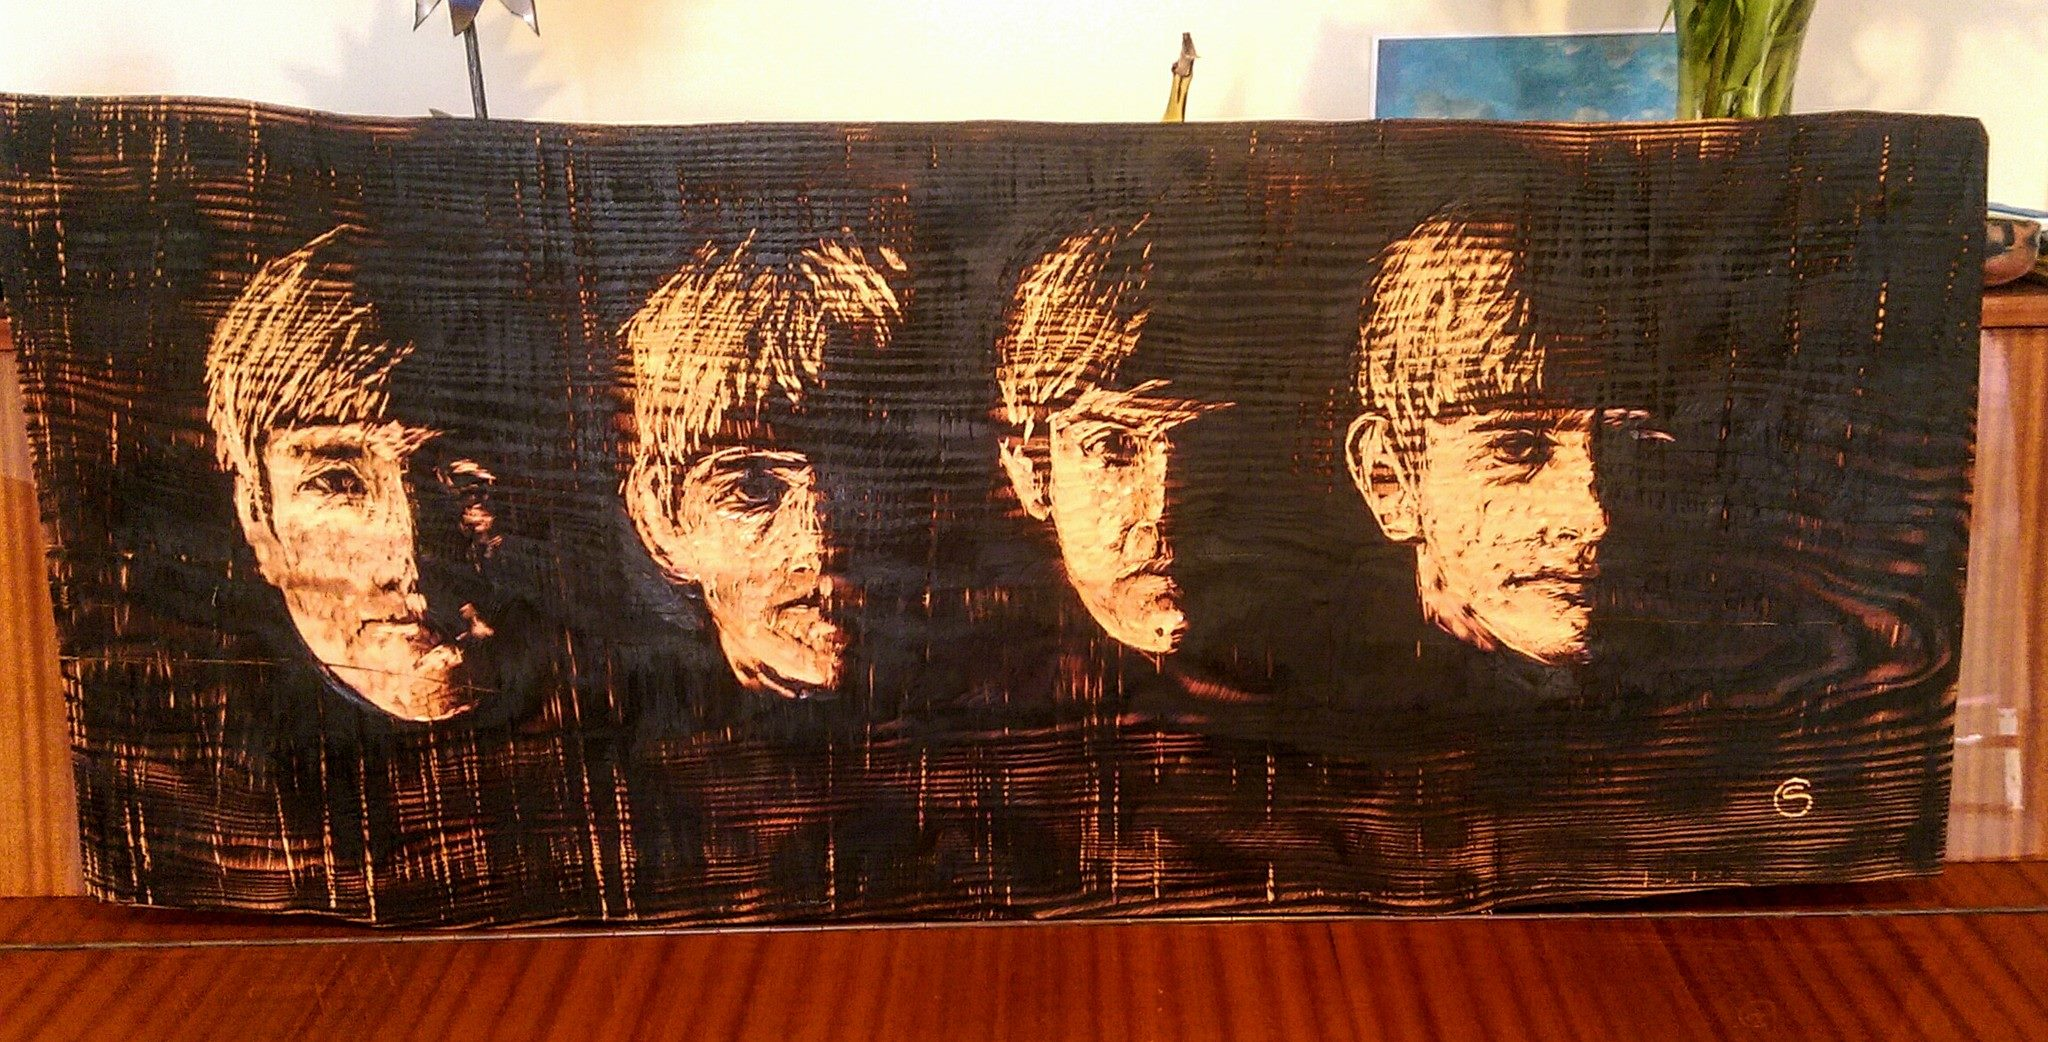 The faces of the four beatles created by simon o'rourke through burning and etching a wood panel